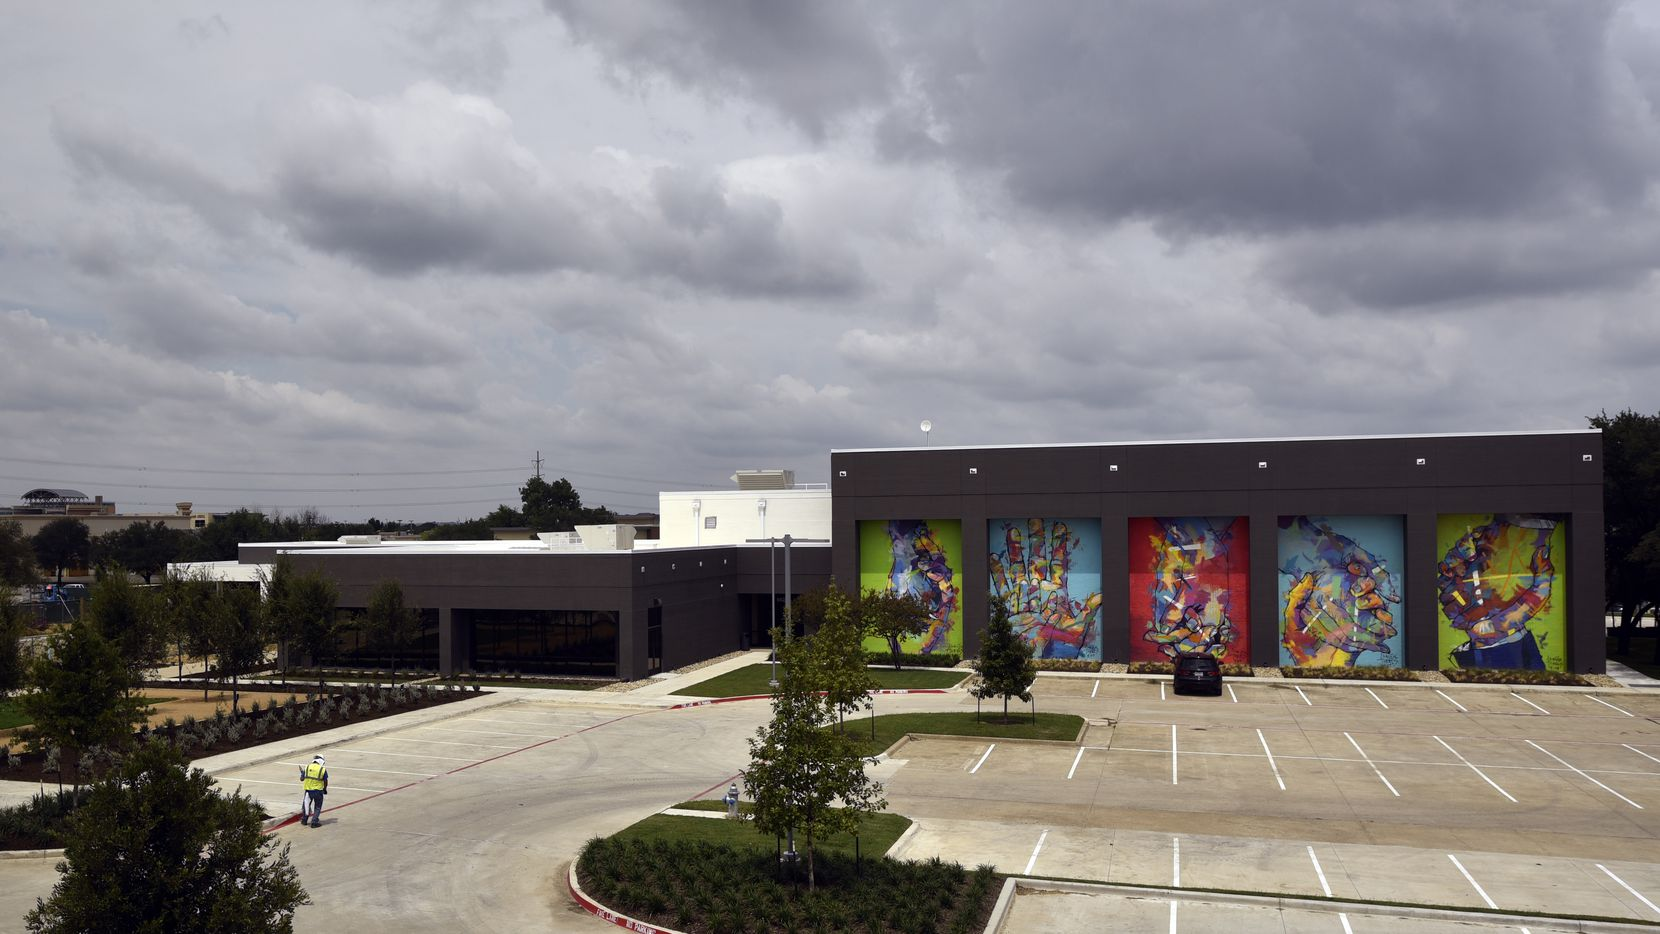 Murals by Spanish artist Adrian Torres decorate the fitness center (right) on the campus of Legacy Central in Plano.